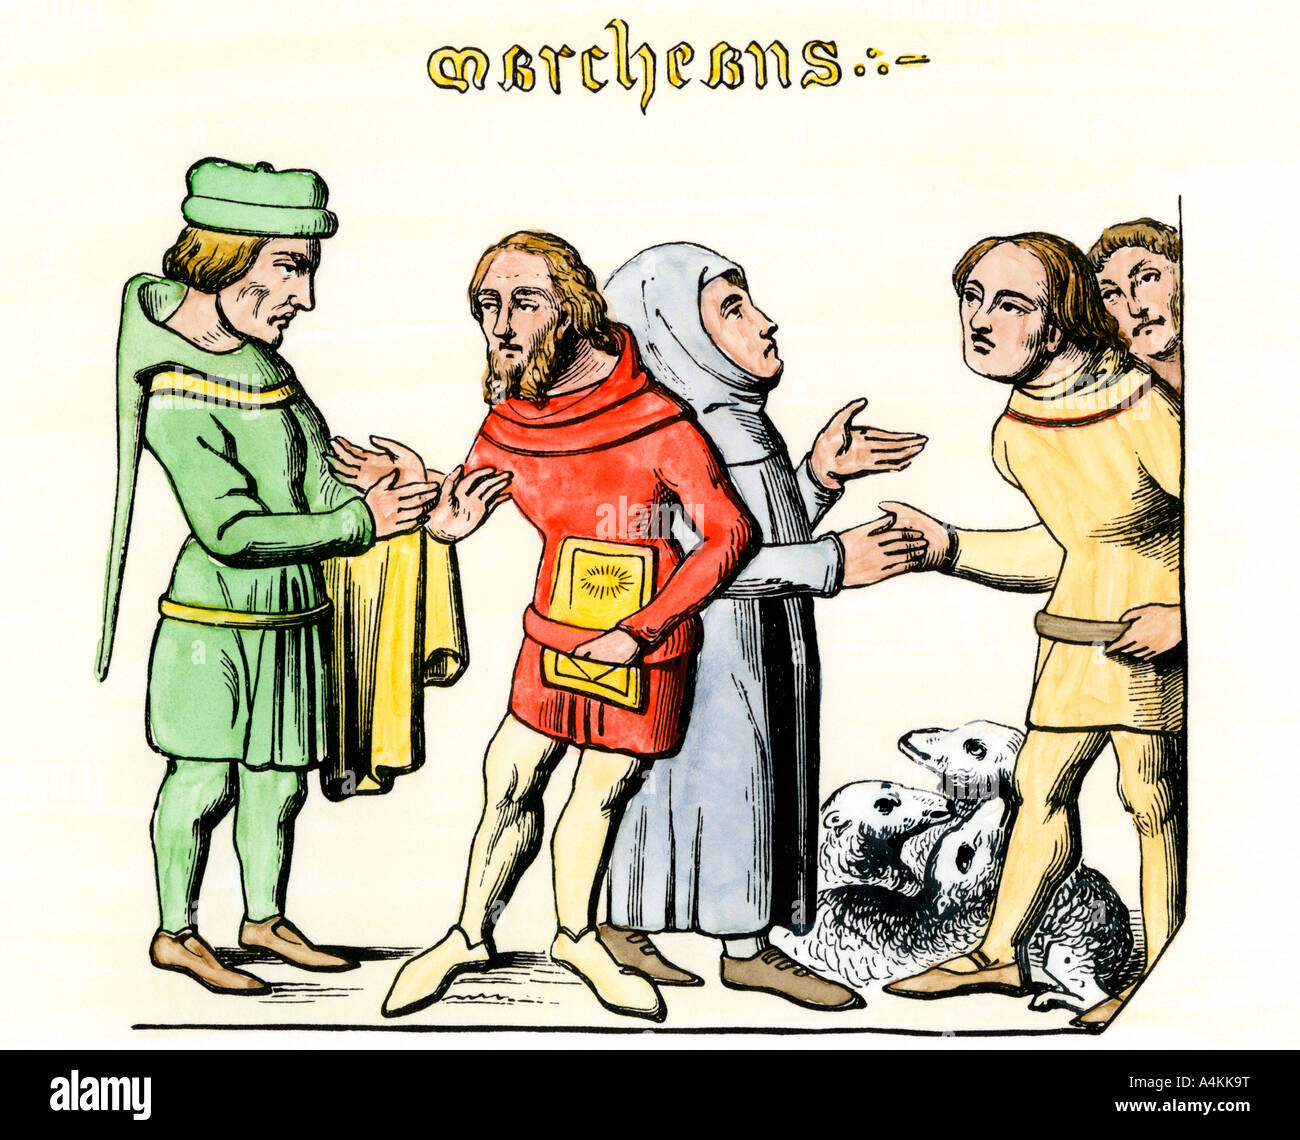 Merchants bartering sheep for goods in the Middle Ages - Stock Image